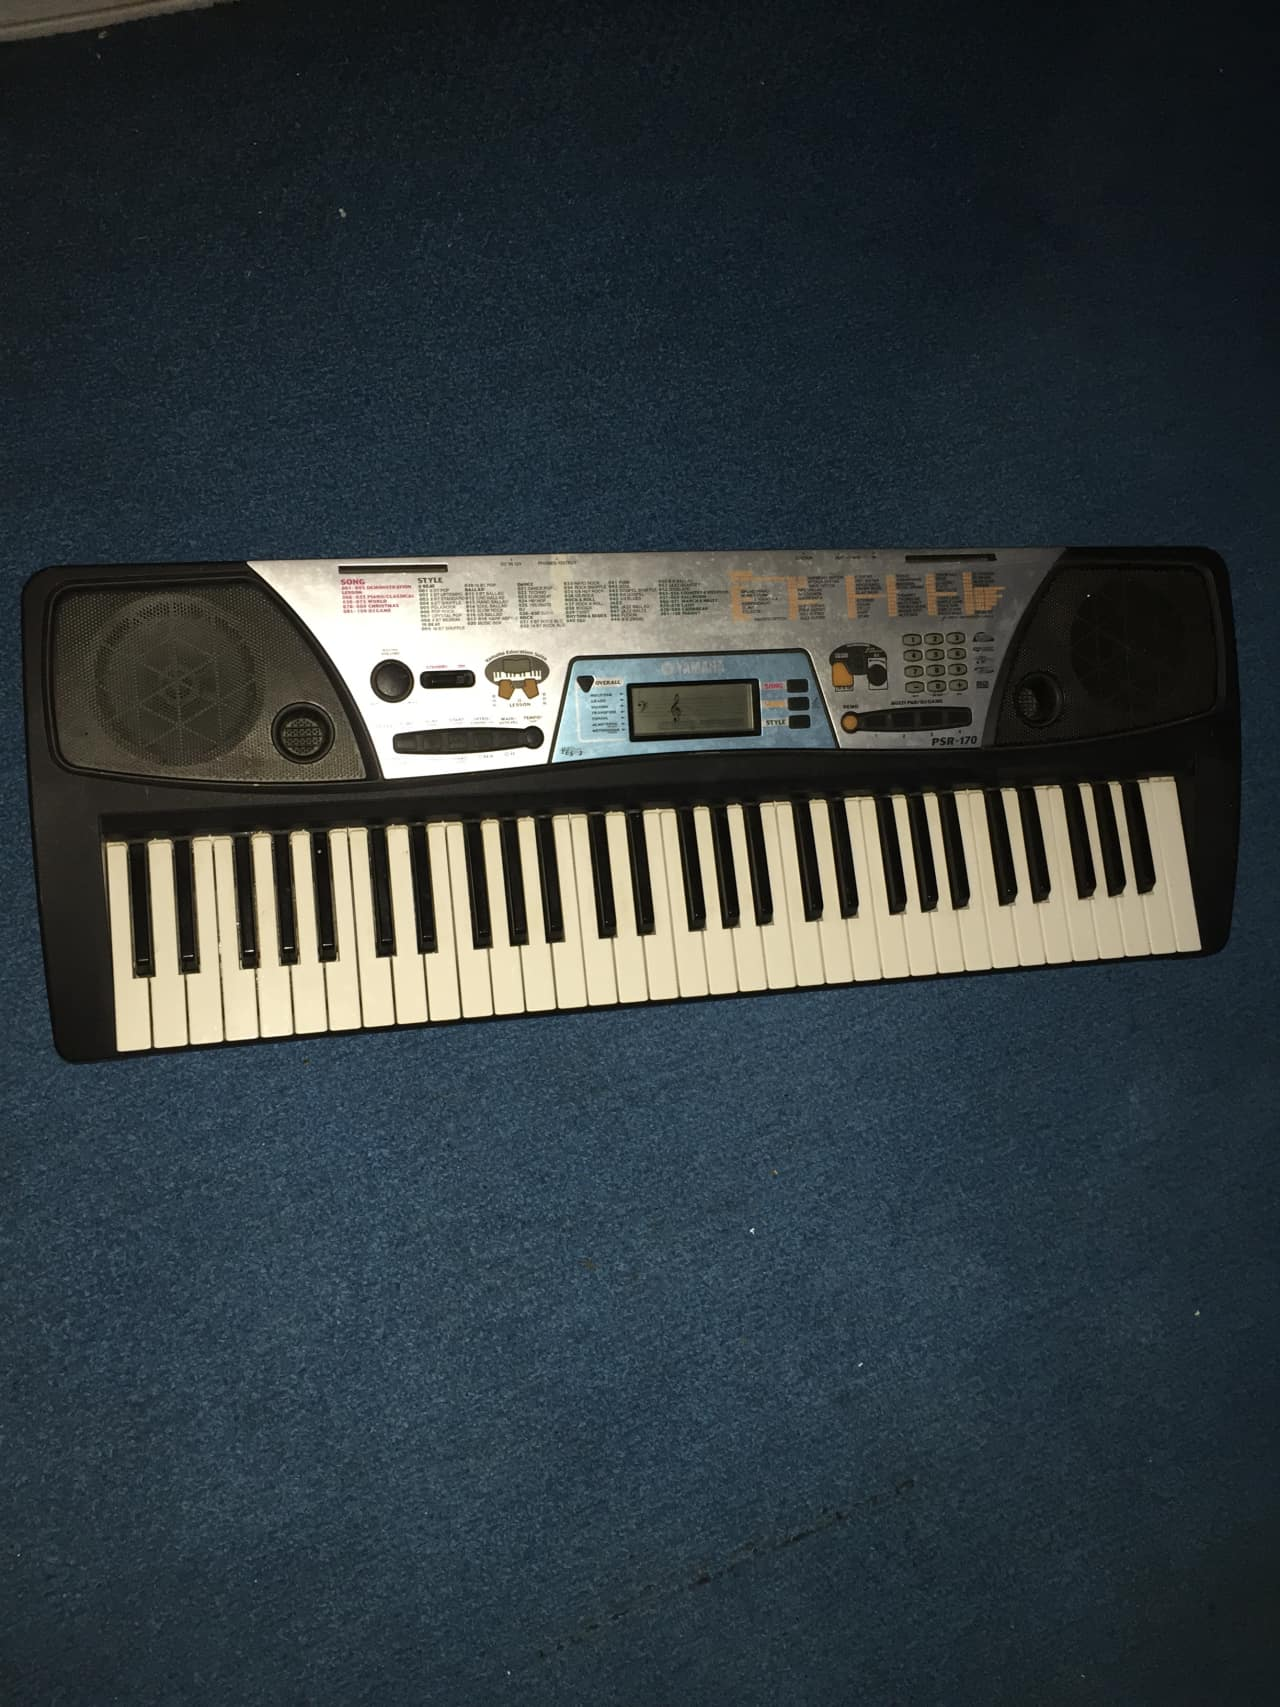 Yamaha psr 170 keyboard 2000s black midi guitar2thestars reverb for Yamaha 3 octave keyboard